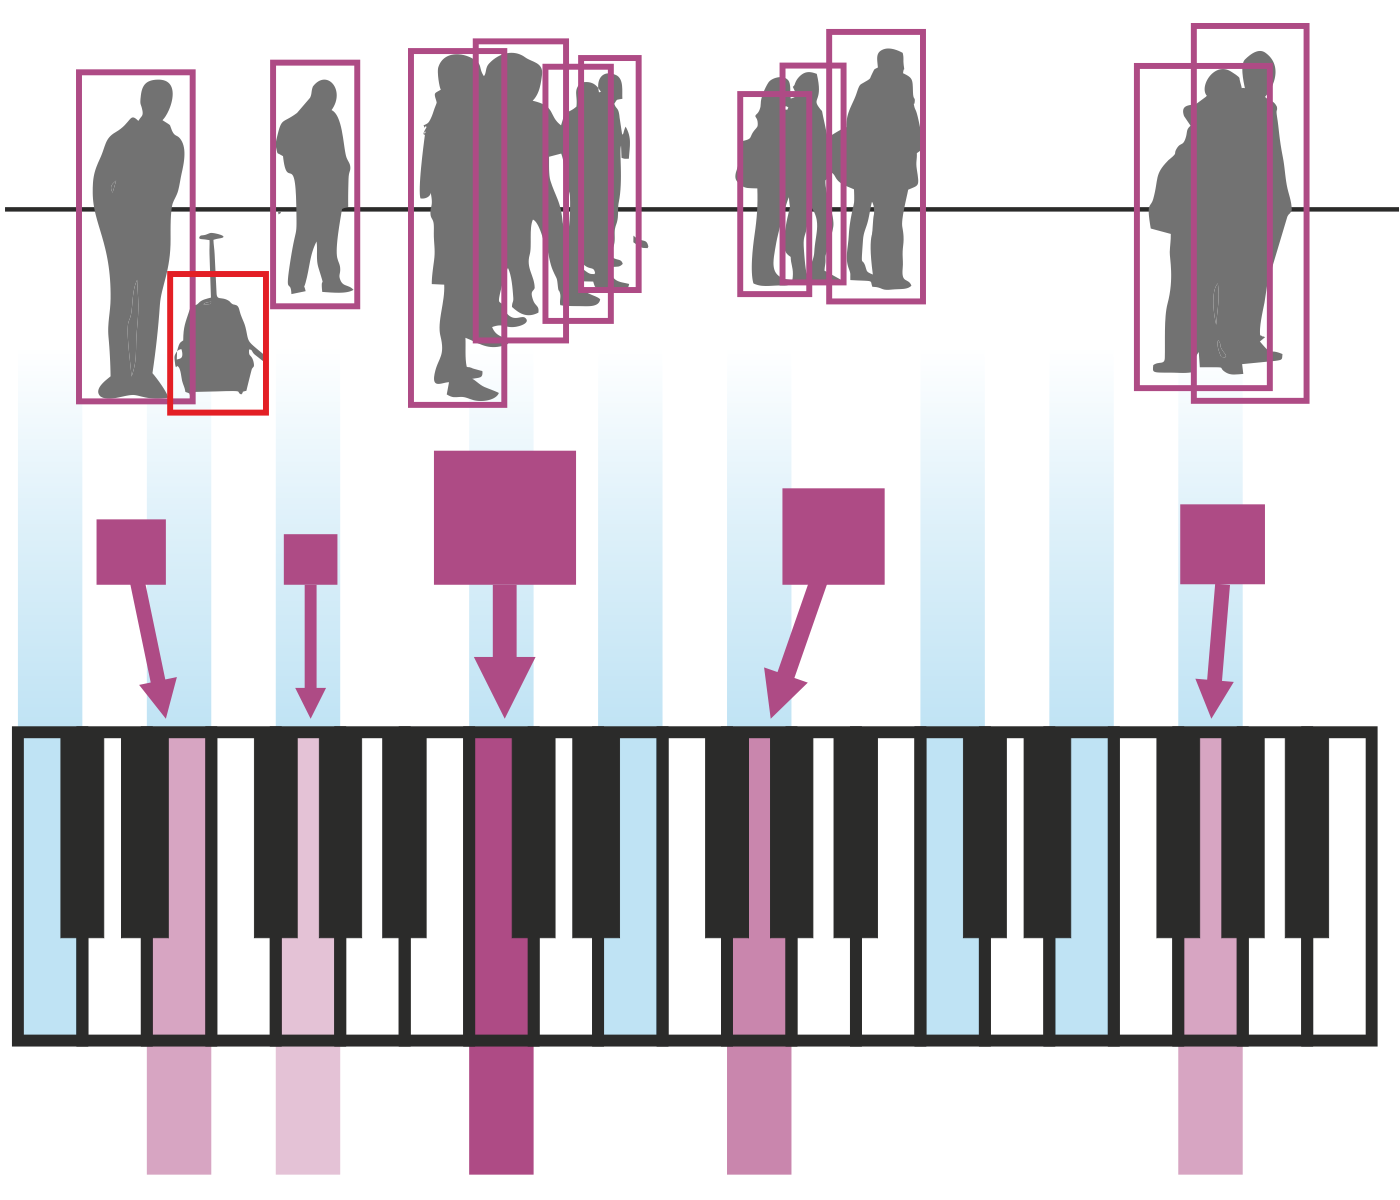 diagram image of people, networked to piano keys with coloured arrows and graphics